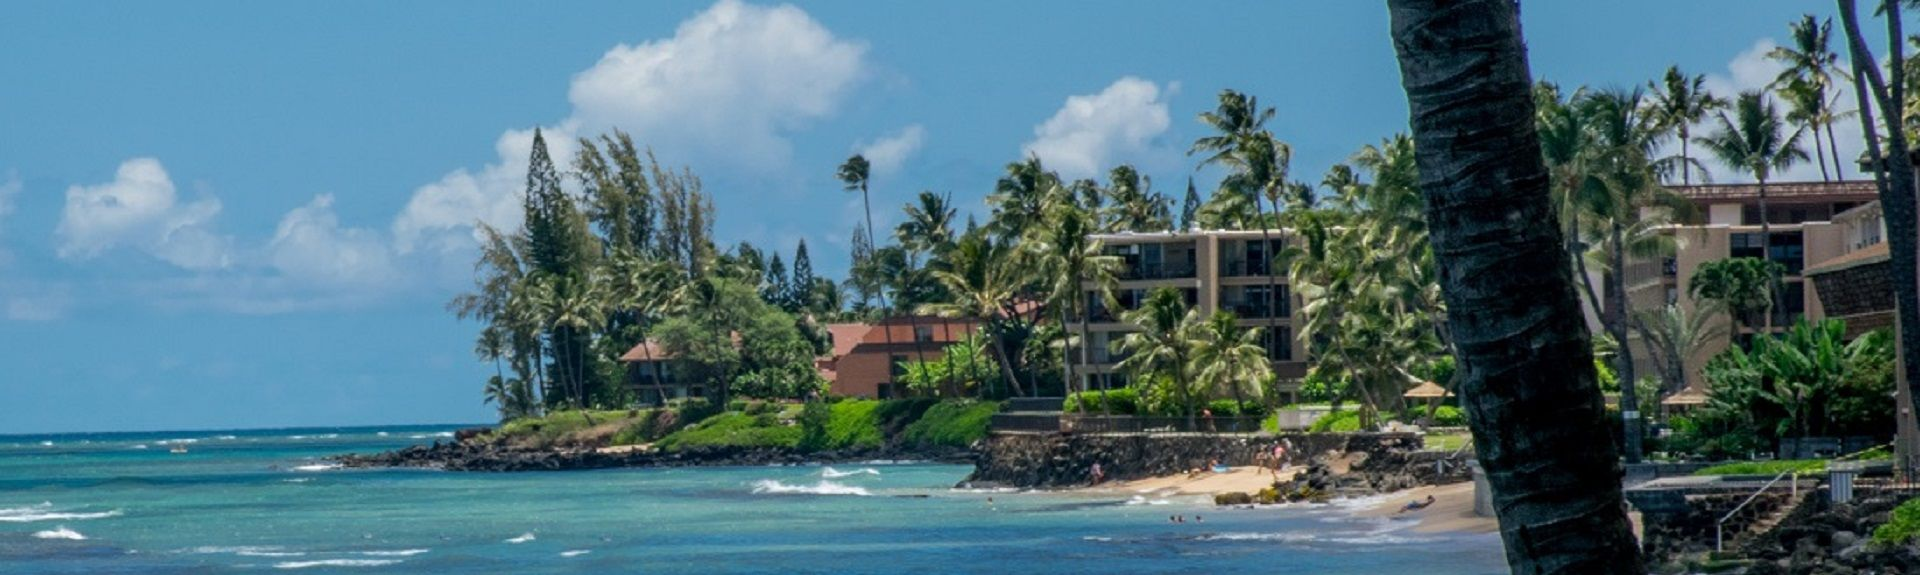 Honolua Bay, Lahaina, Hawaii, United States of America